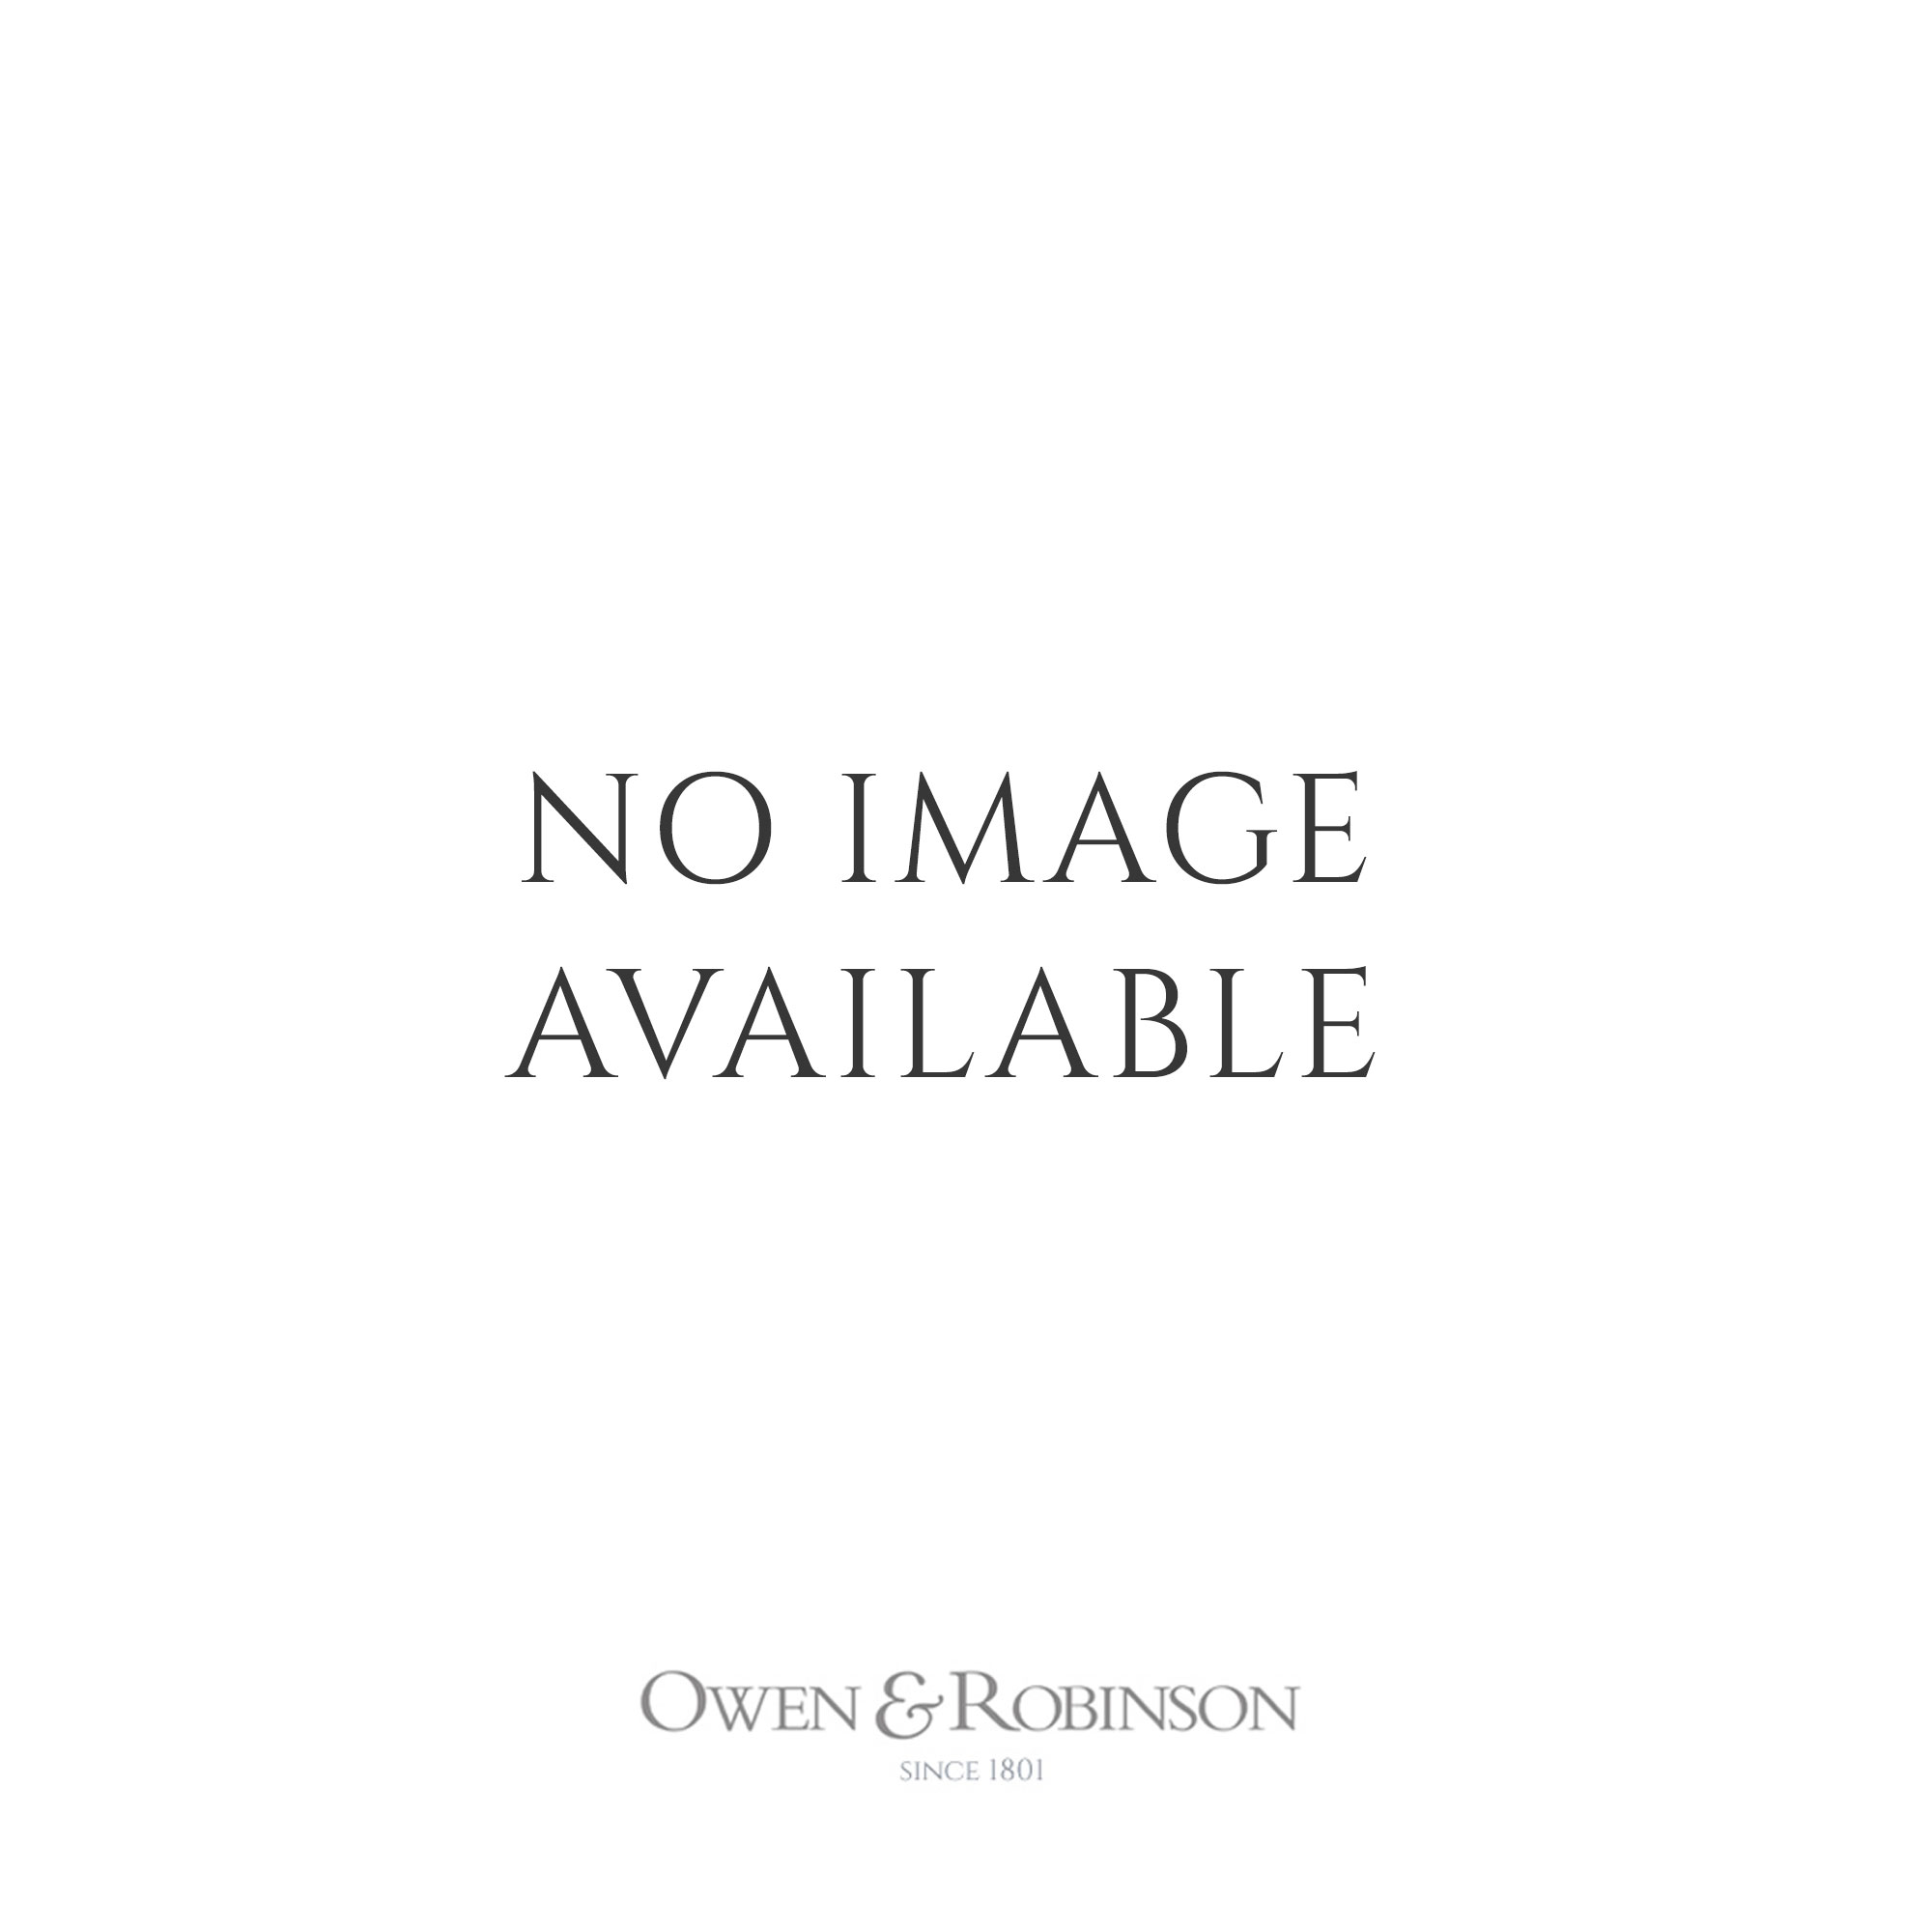 Owen & Robinson Bumble Bee Polished Pendant with Satin Wings on Adjustable Chain